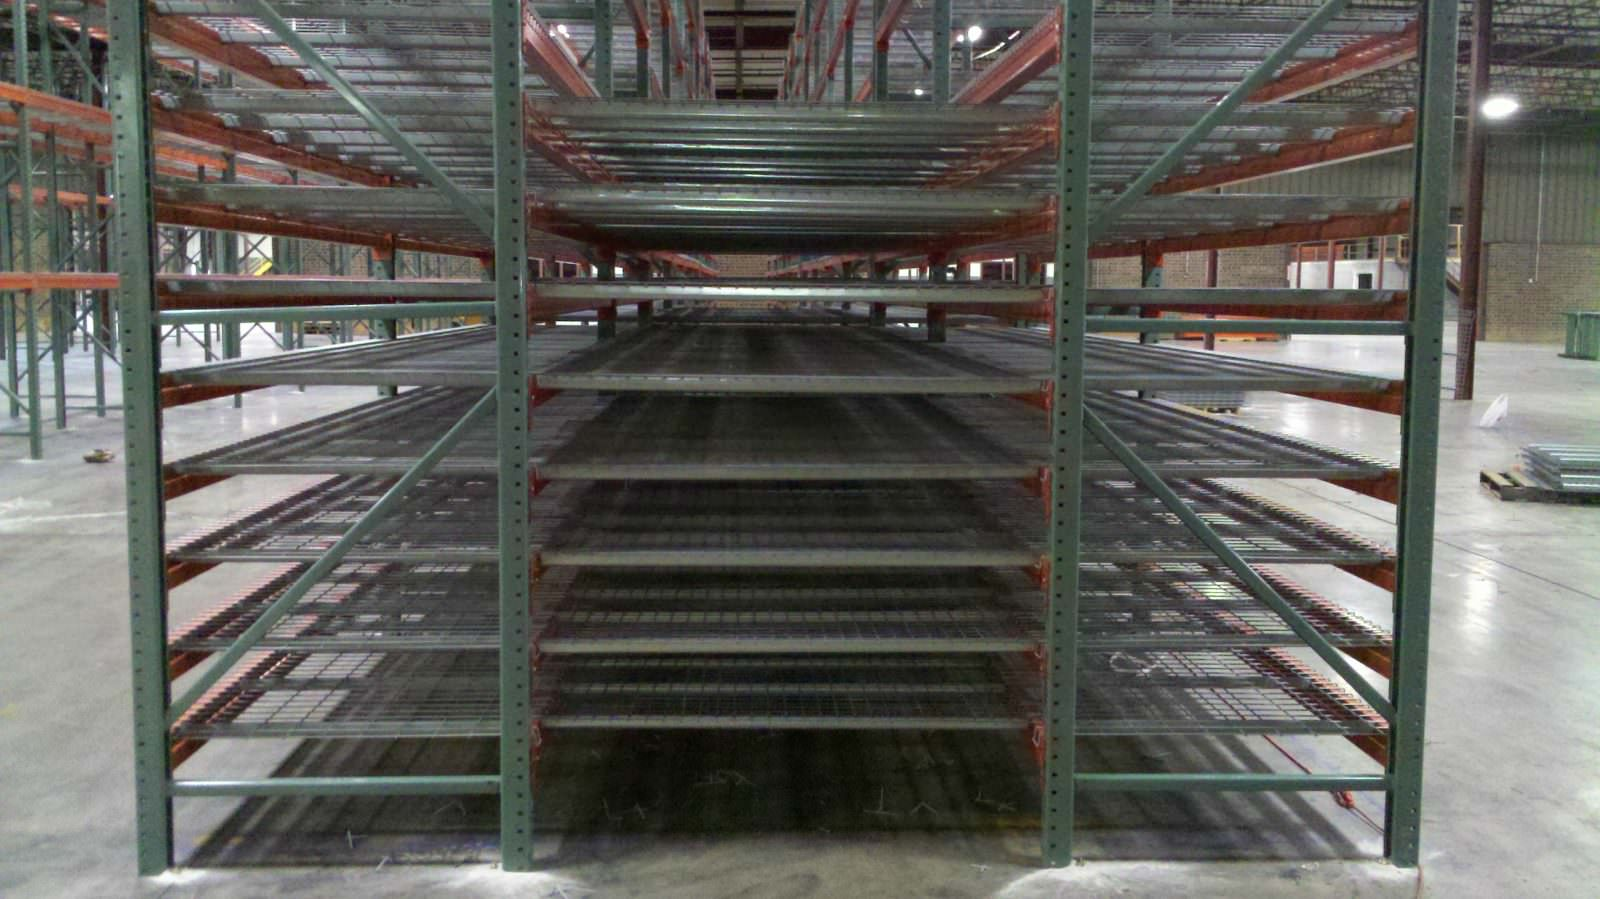 pallet racking, warehouse design, material handling, installation